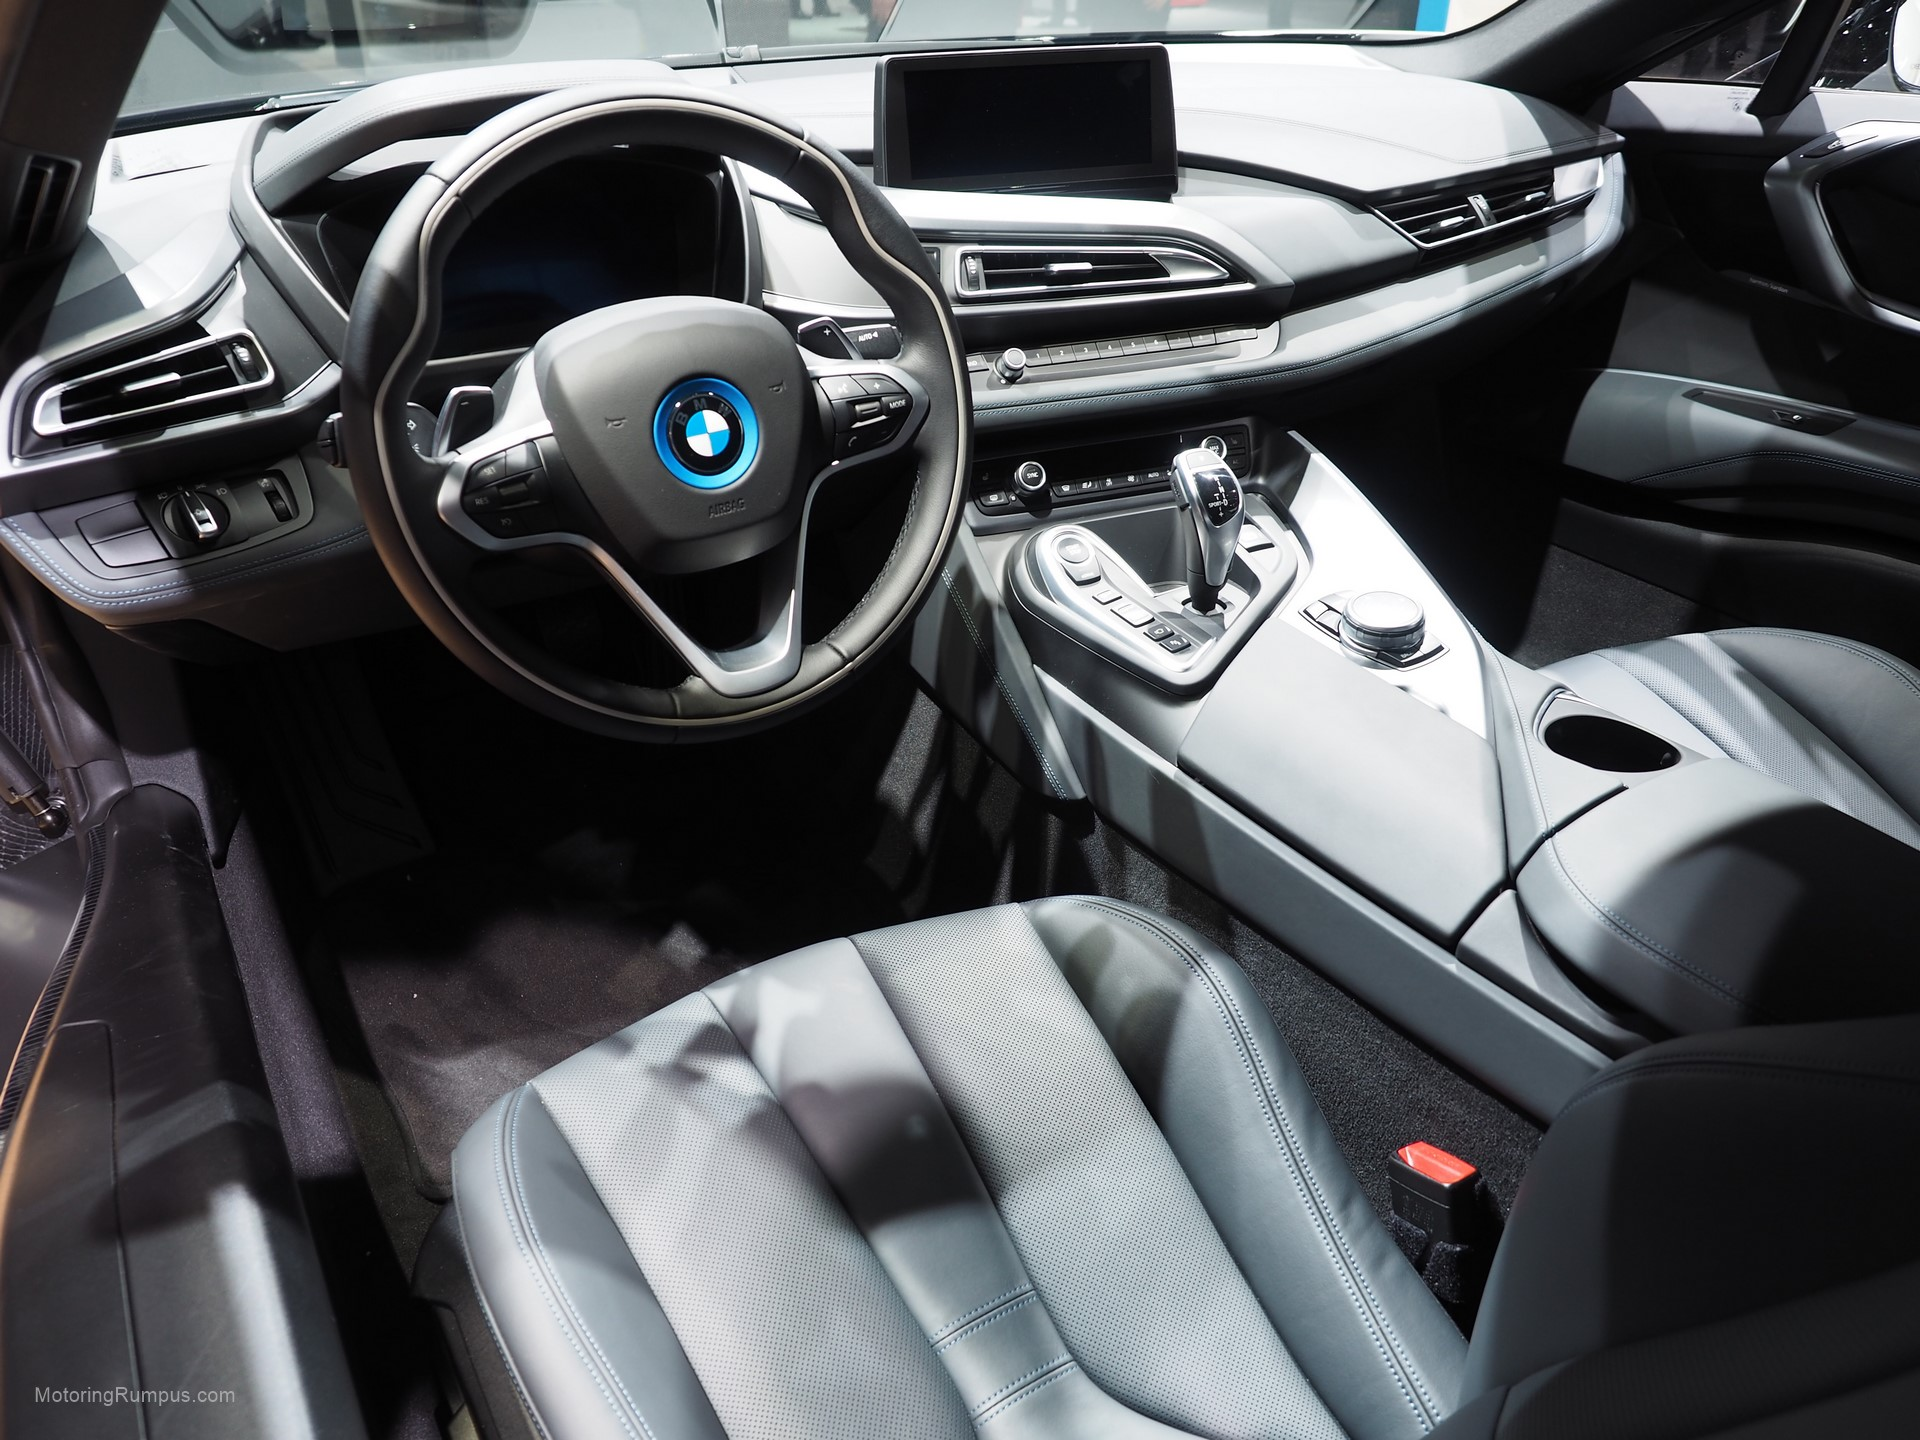 2016 naias bmw i8 interior motoring rumpus for Bmw i8 interior